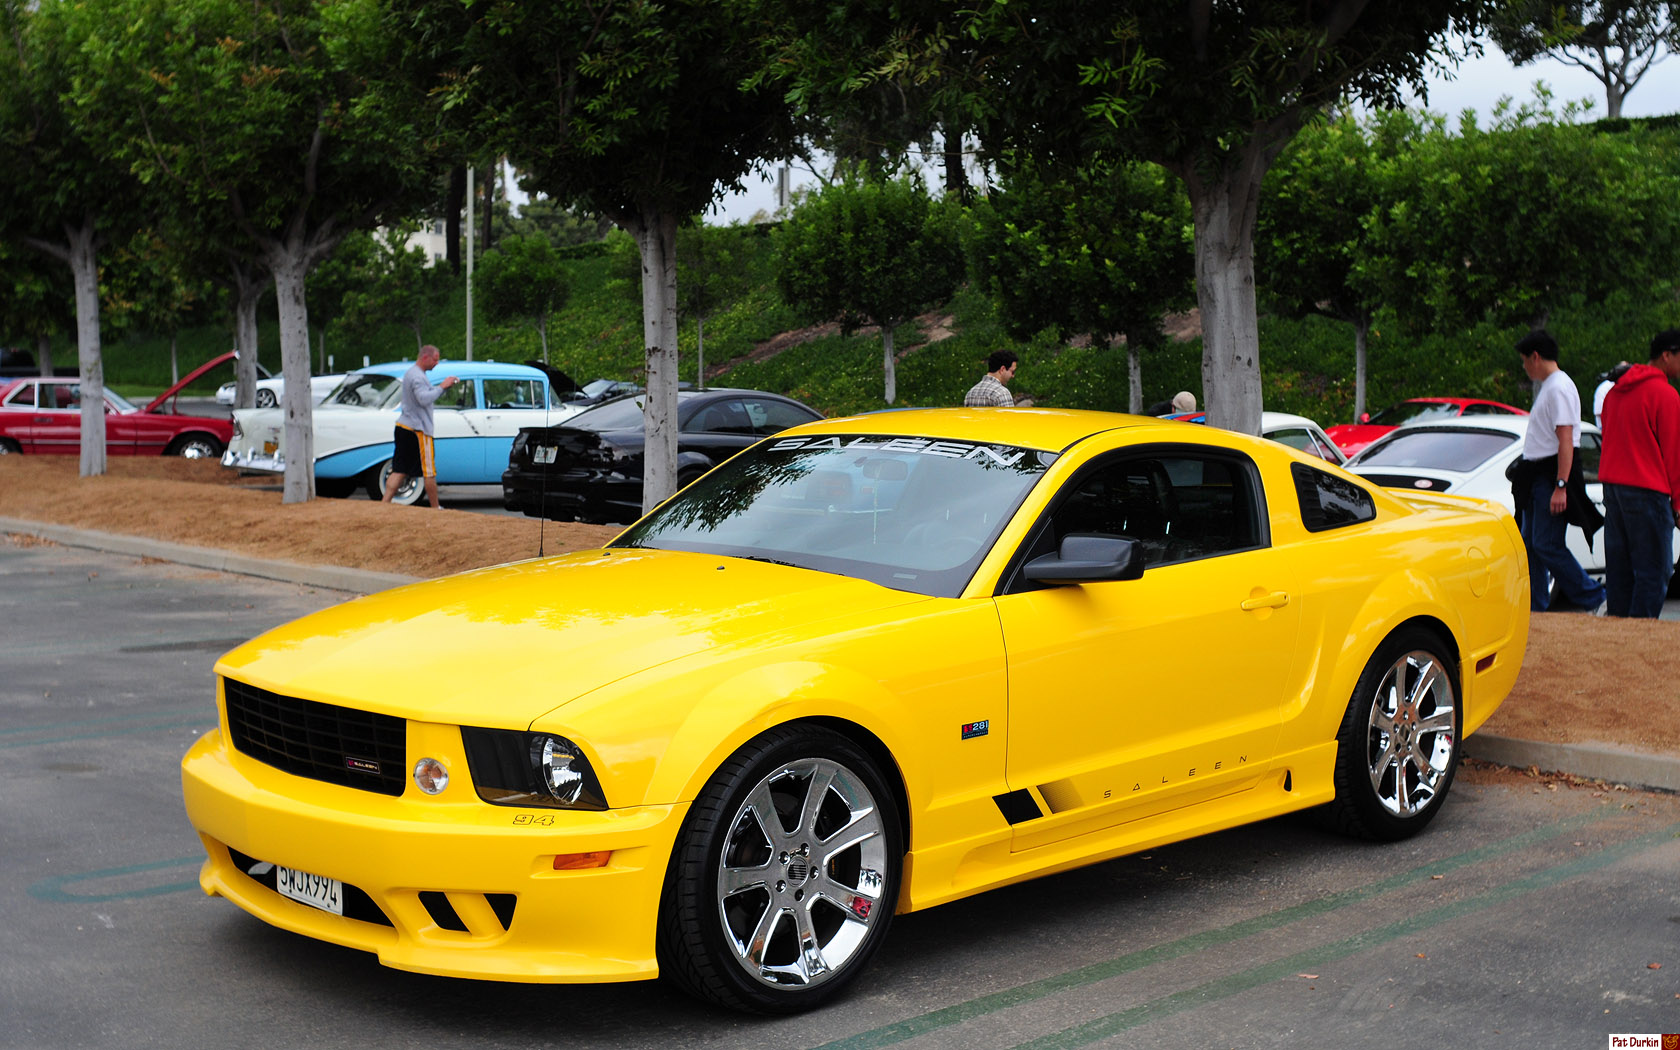 2005 saleen ford mustang s281 extreme images pictures and videos. Black Bedroom Furniture Sets. Home Design Ideas